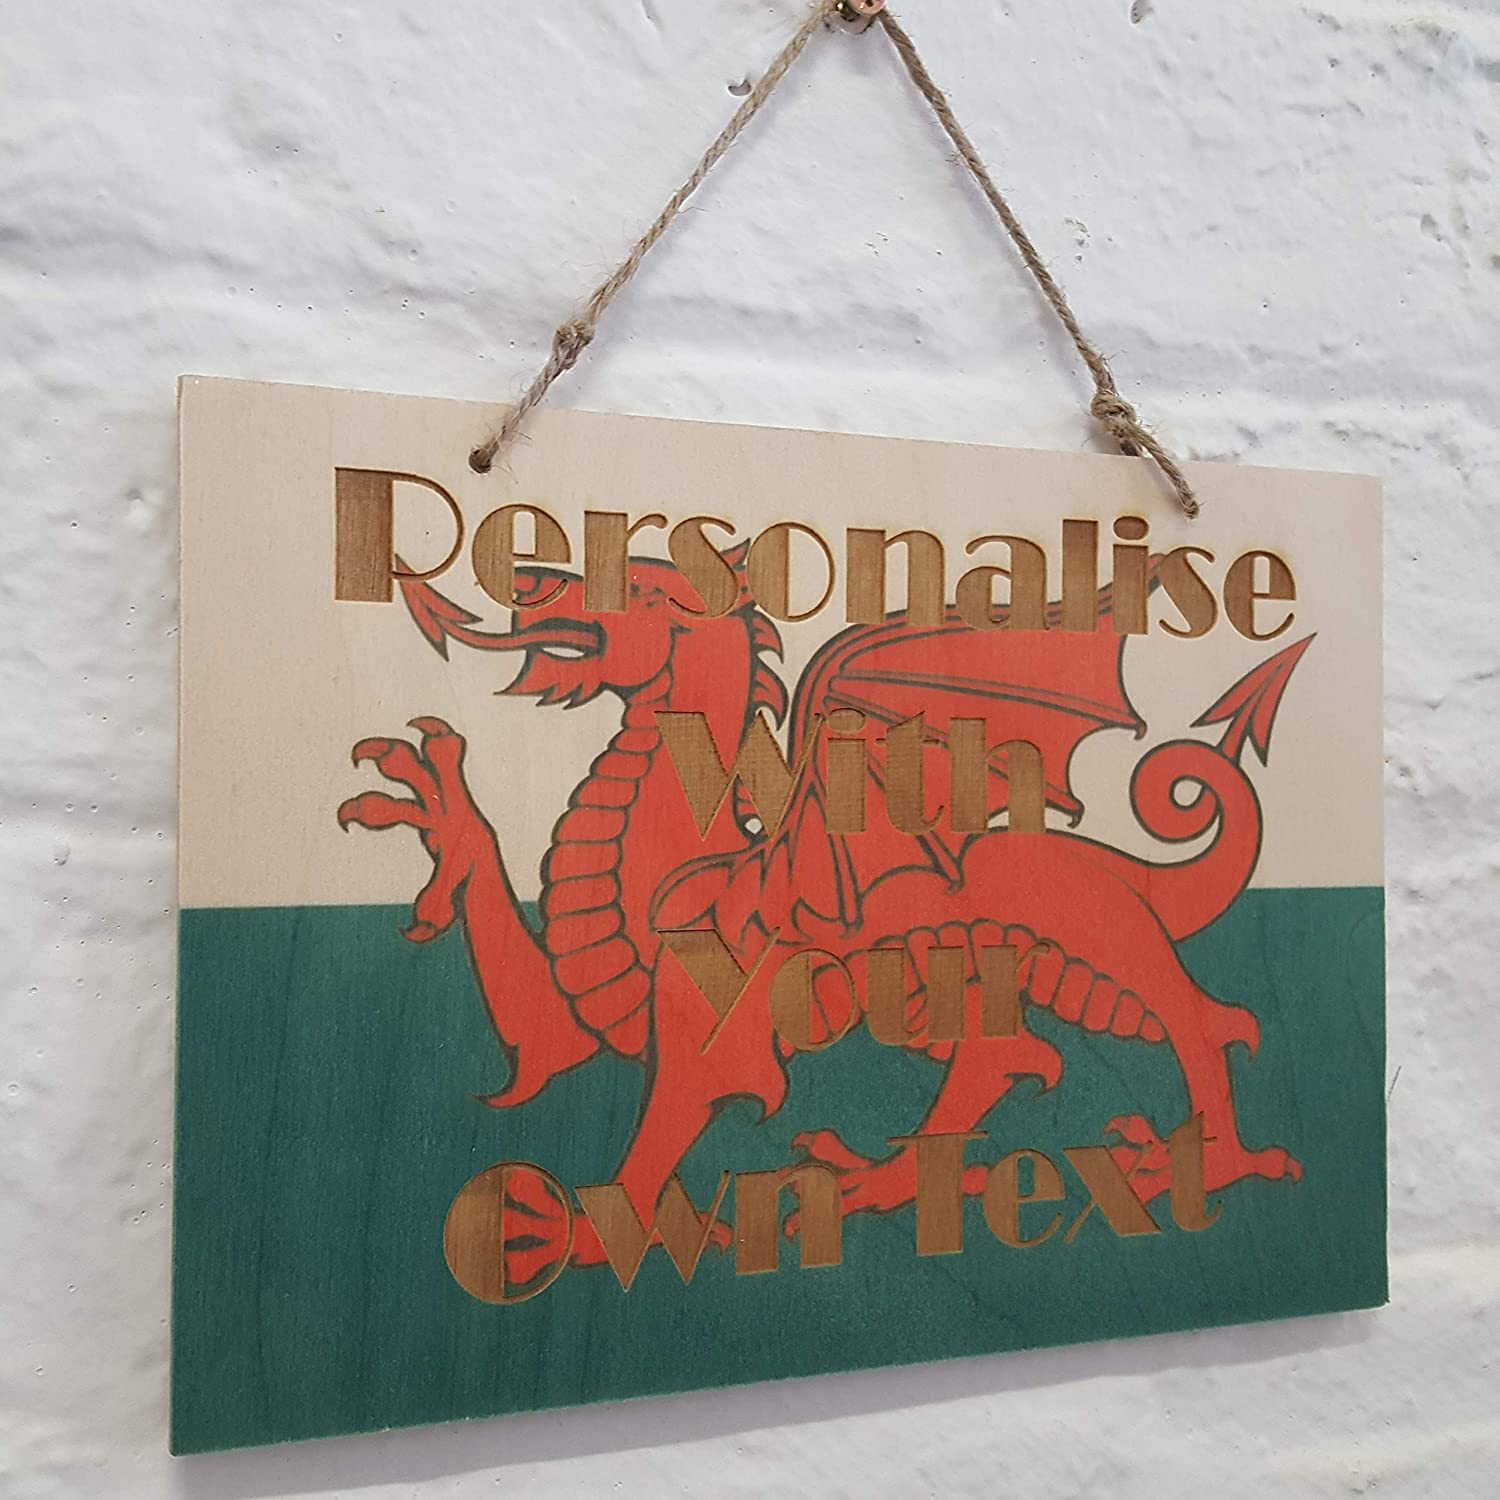 Welsh Wales Flag Dragon ADD YOUR OWN TEXT Hanging wooden wall sign plaque 14x21cm PERSONALISED Custom Made A5 Size